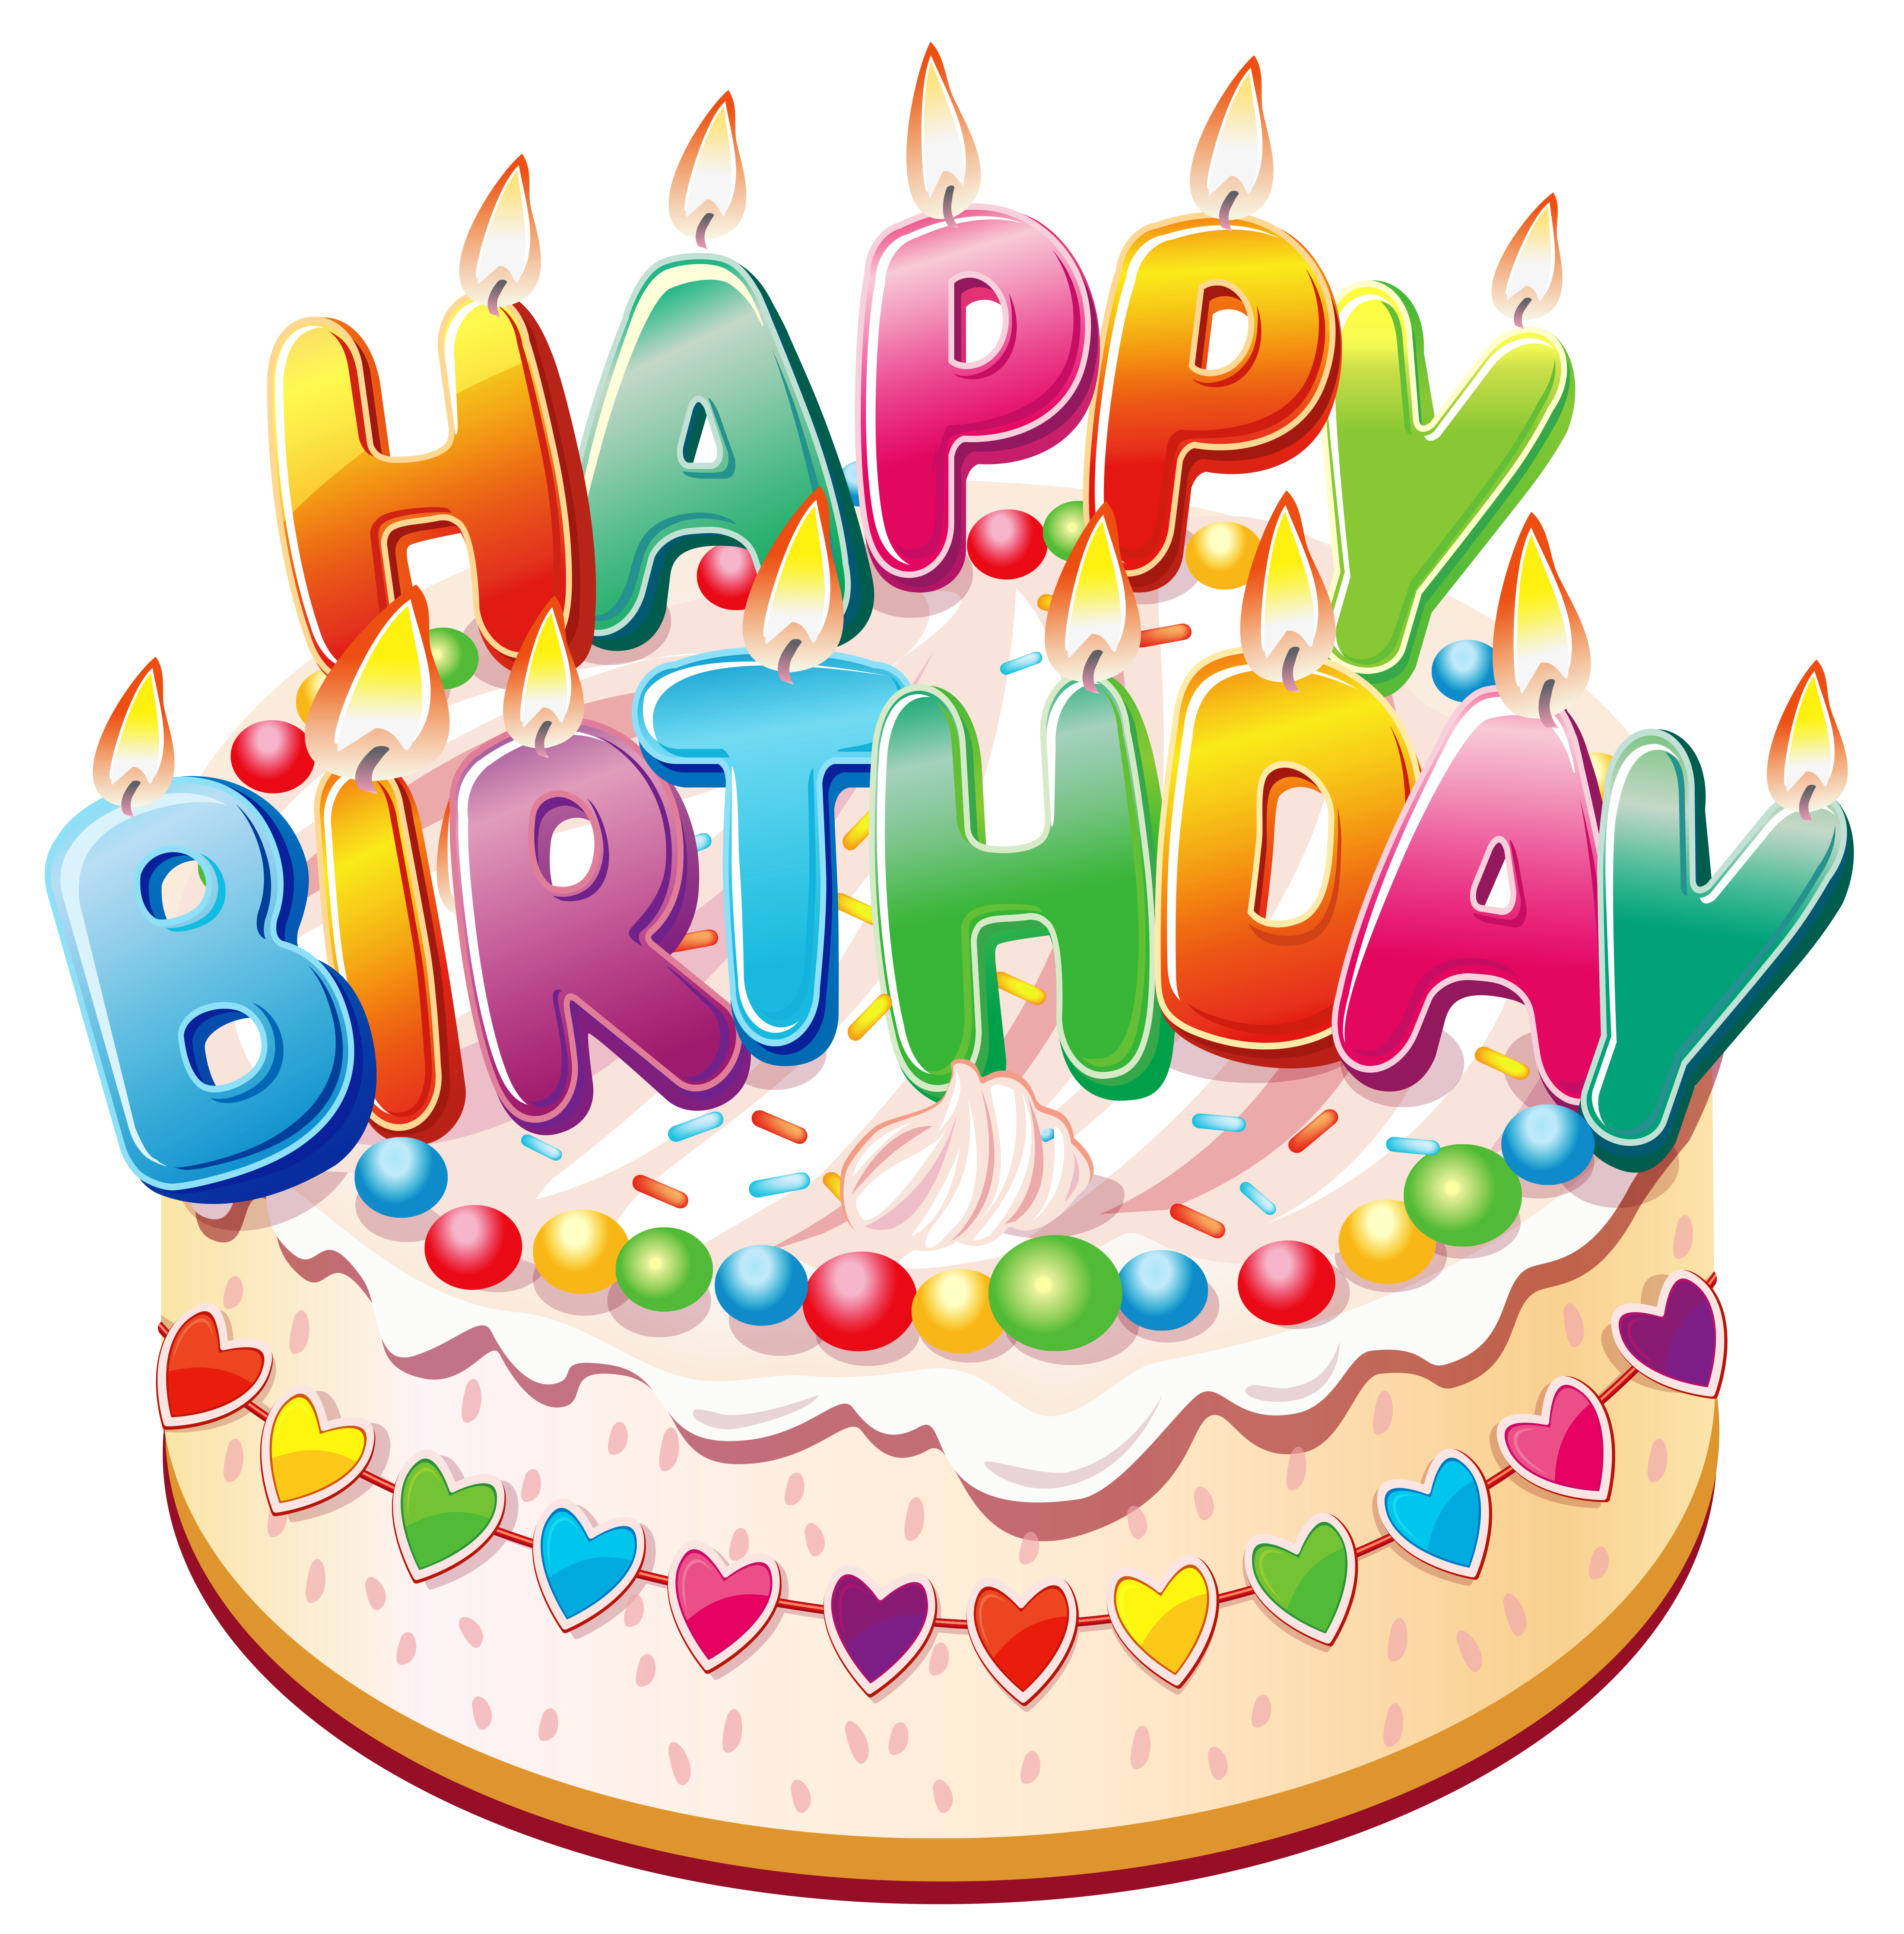 Clipart Pictures Of Birthday .-Clipart pictures of birthday .-15